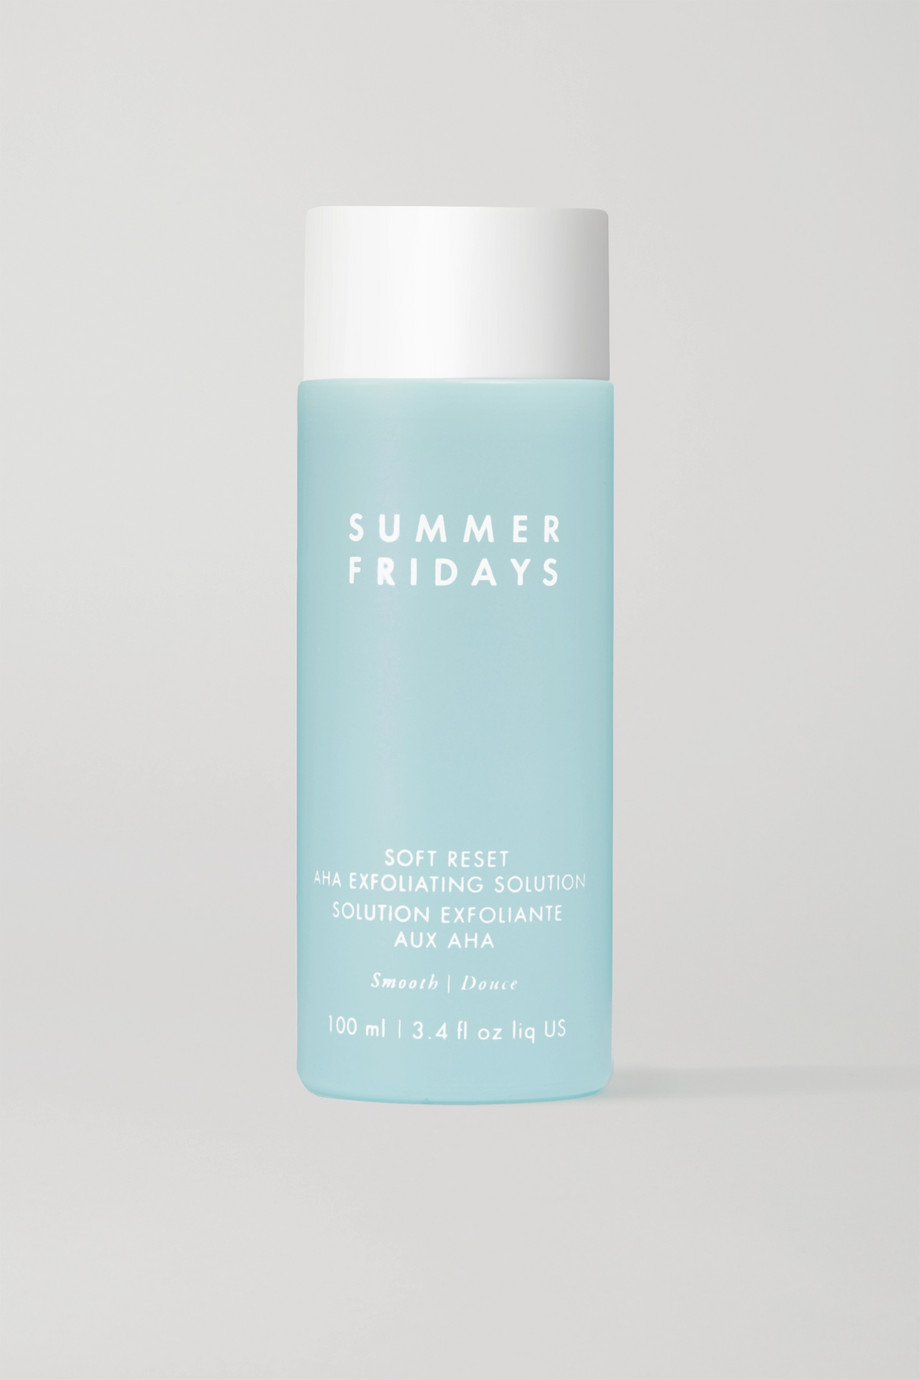 SUMMER FRIDAYS Soft Reset AHA Exfoliating Solution, 100ml